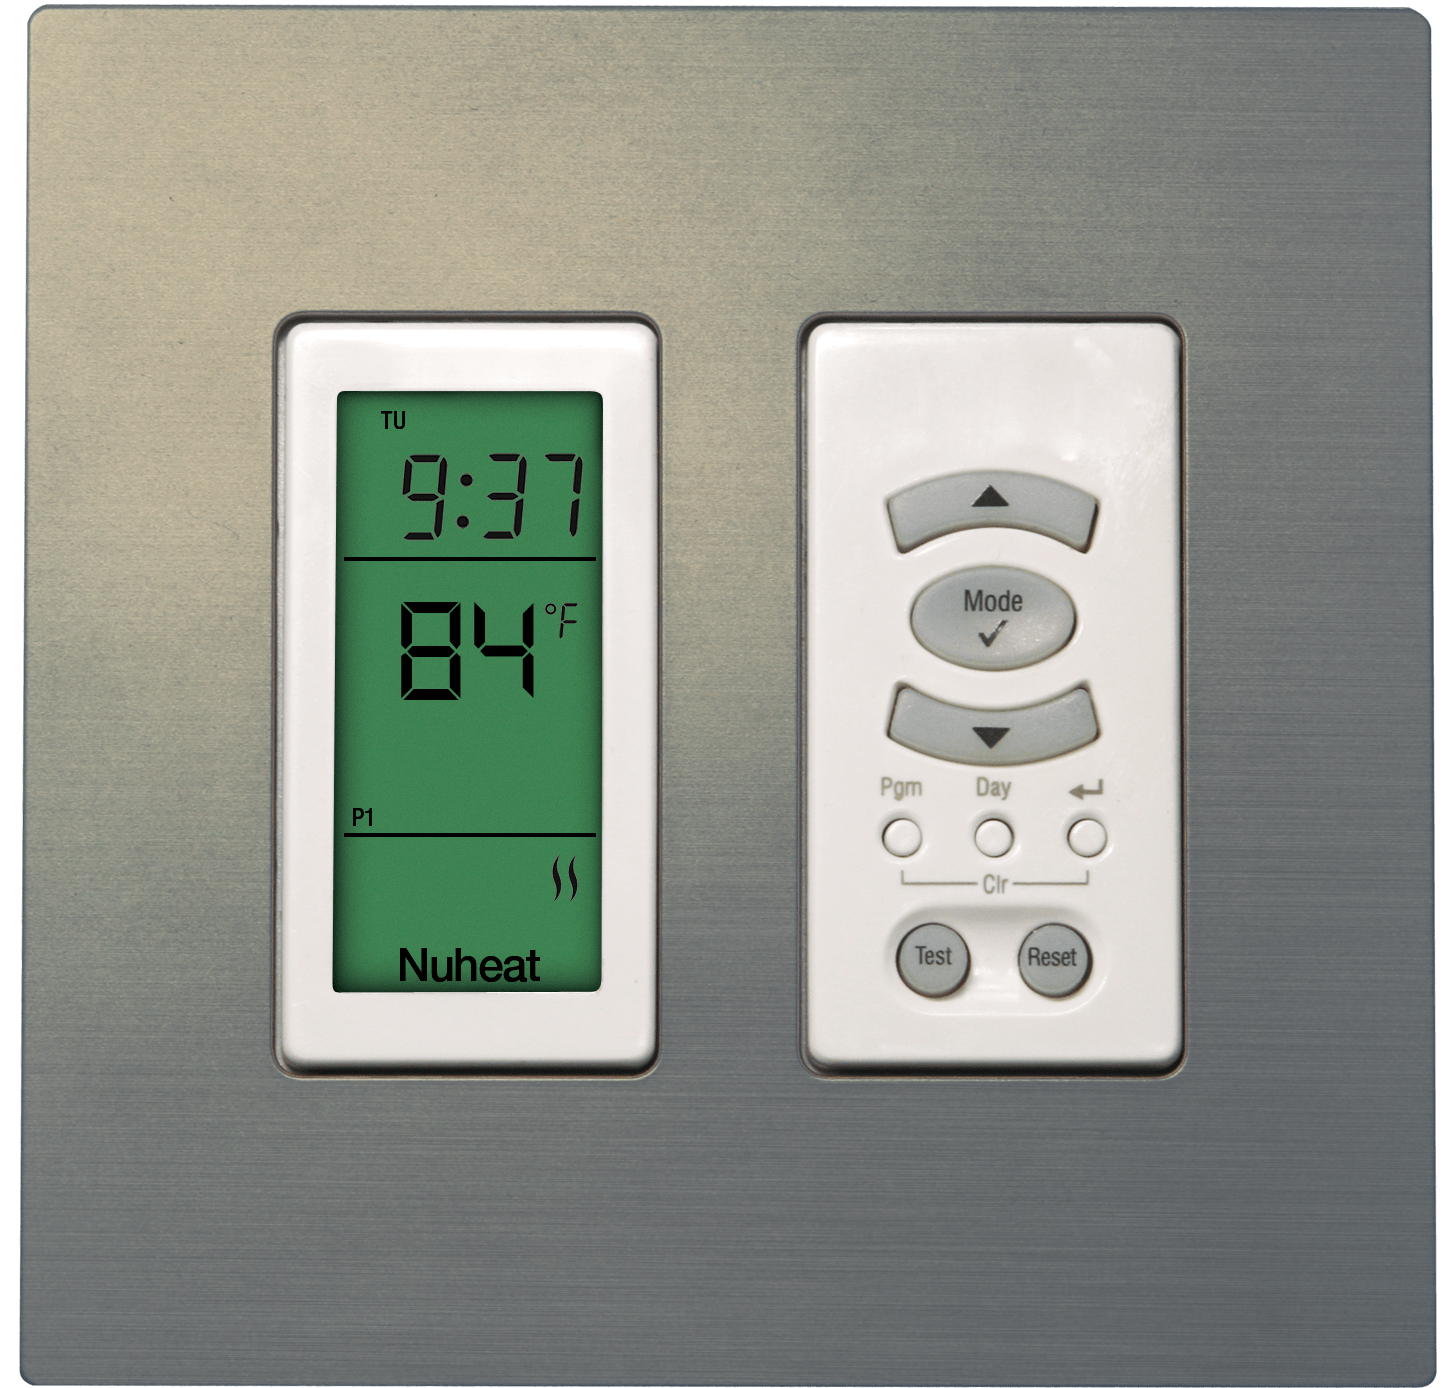 harmony w stealfaceplate 2015?resize=665%2C637 white rodgers thermostat 1f80 51 wiring diagram white rodgers  at creativeand.co